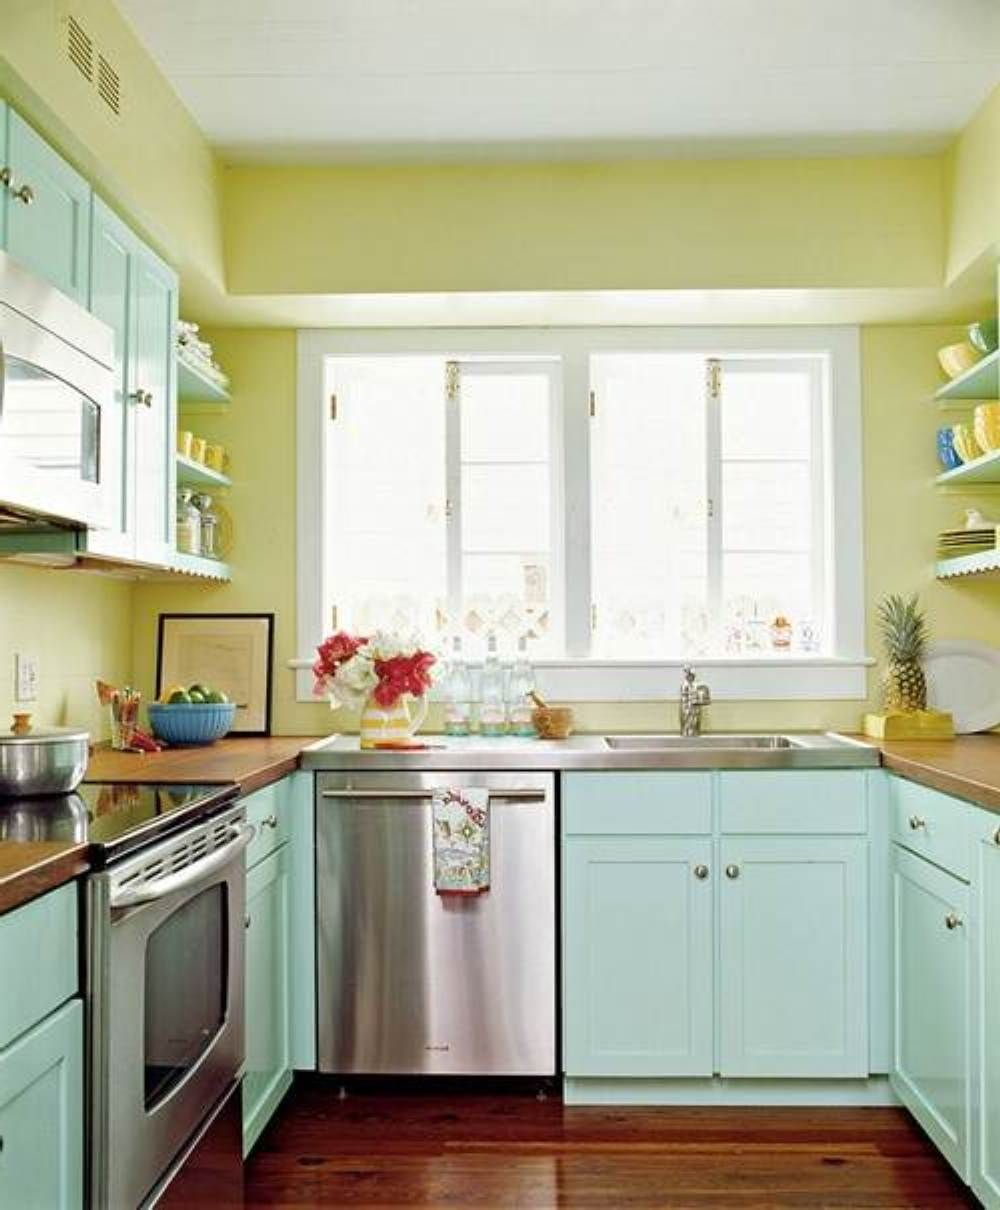 innovative yellow kitchen wall paint ideas | Yellow Wall Color Ideas For Small Kitchen : The Best Wall ...